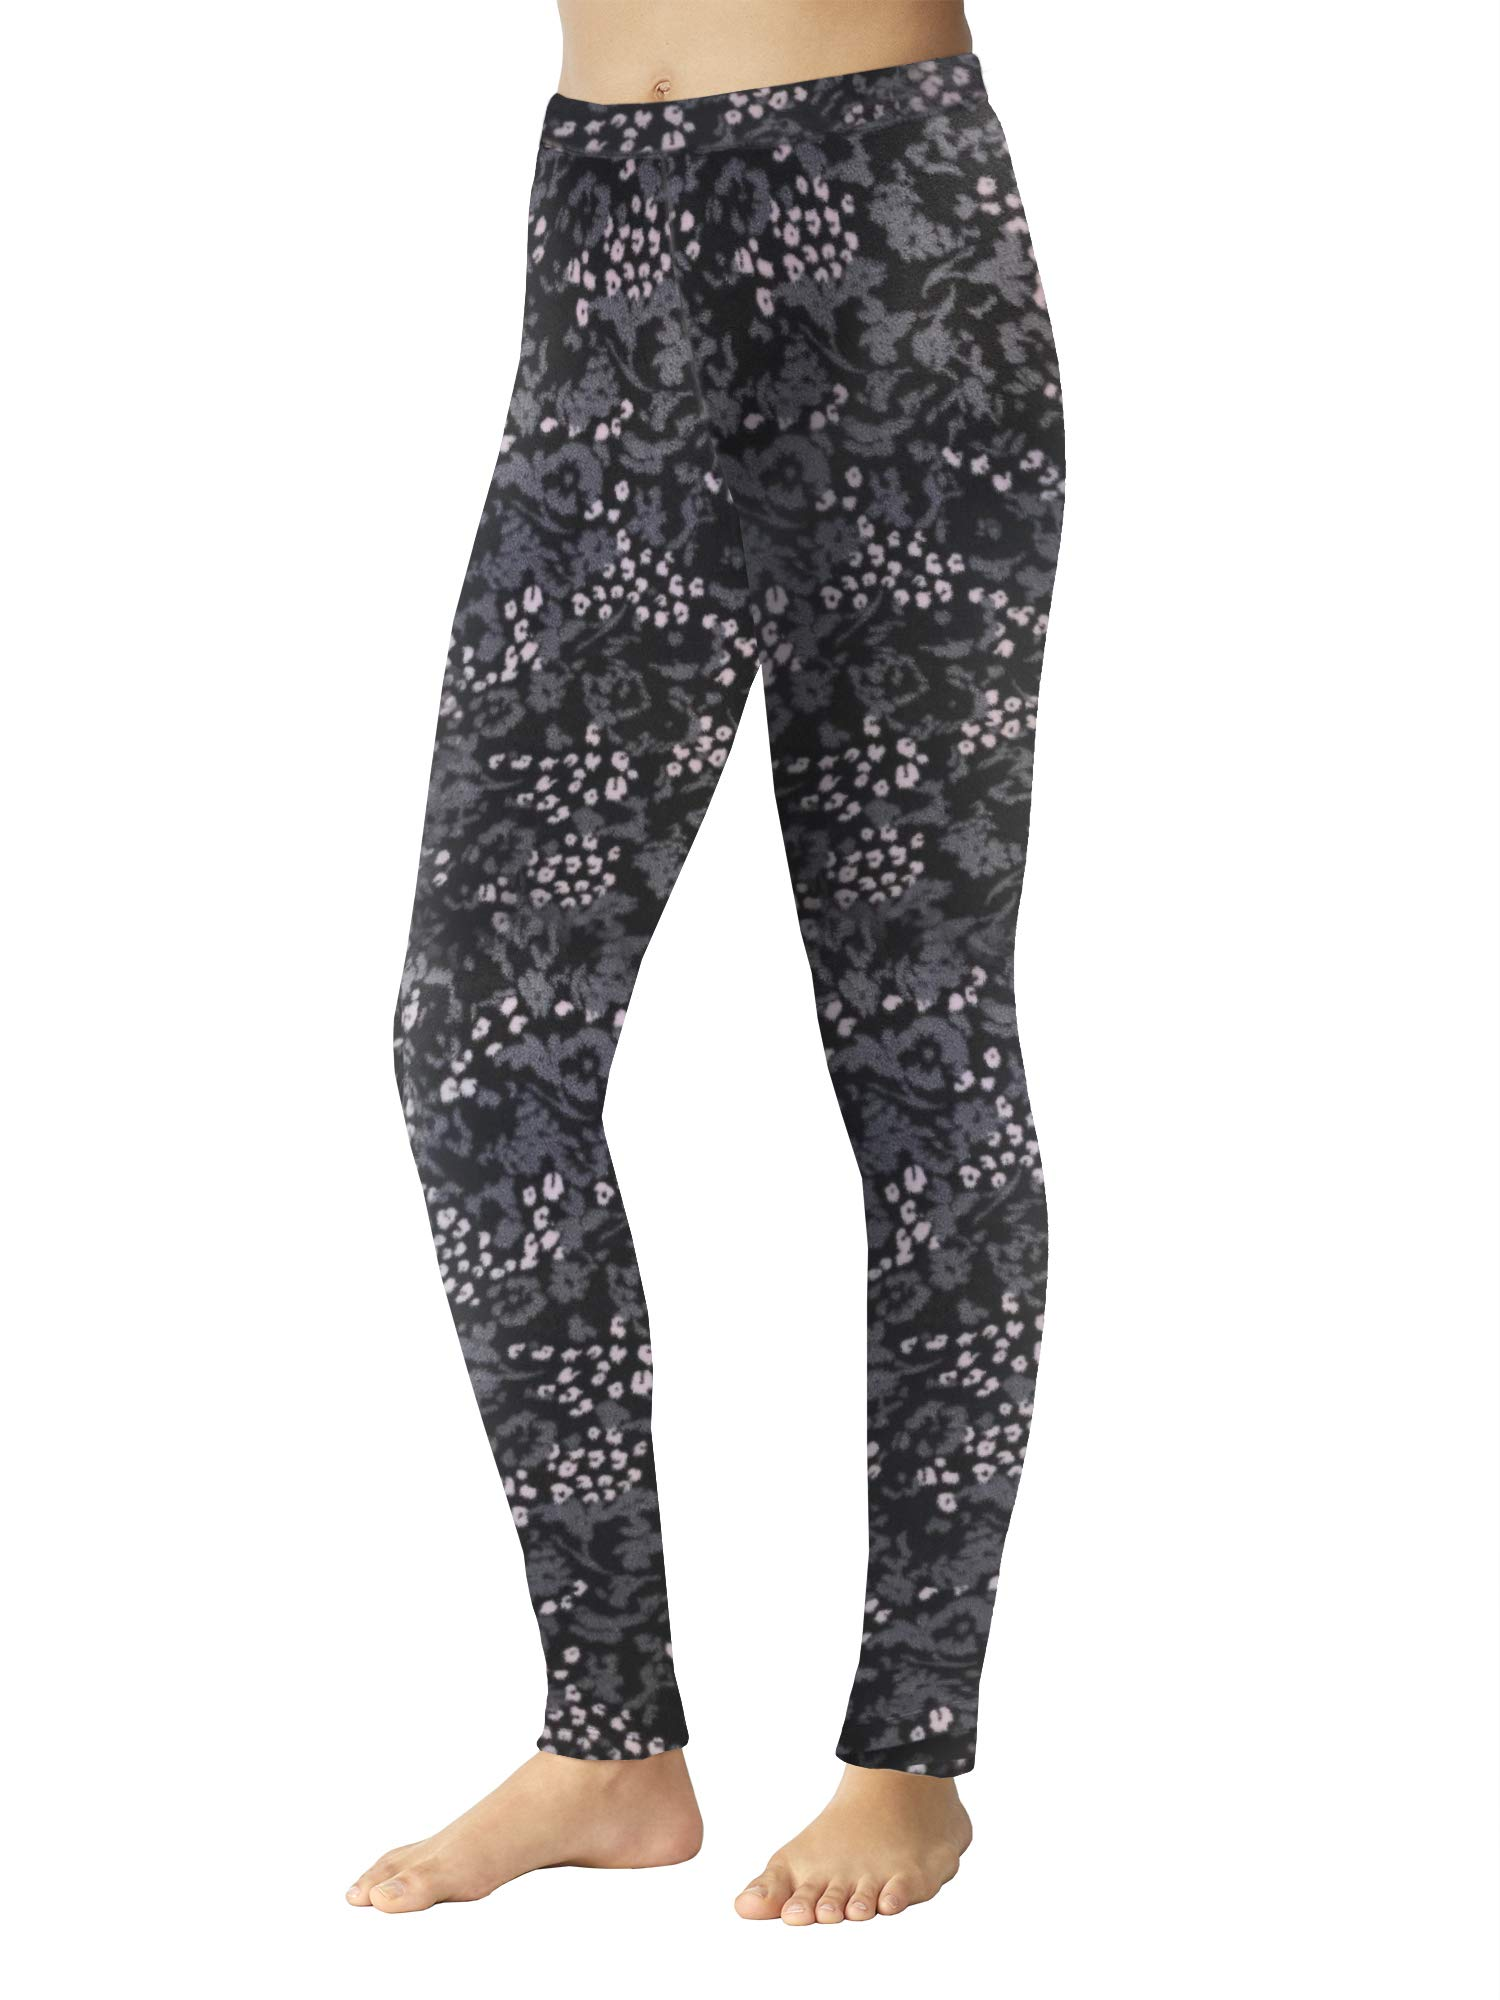 Cuddl Duds ClimateRight Womens Stretch Fleece Warm Underwear Leggings/Pants (2XL - Animal Floral) by Cuddl Duds